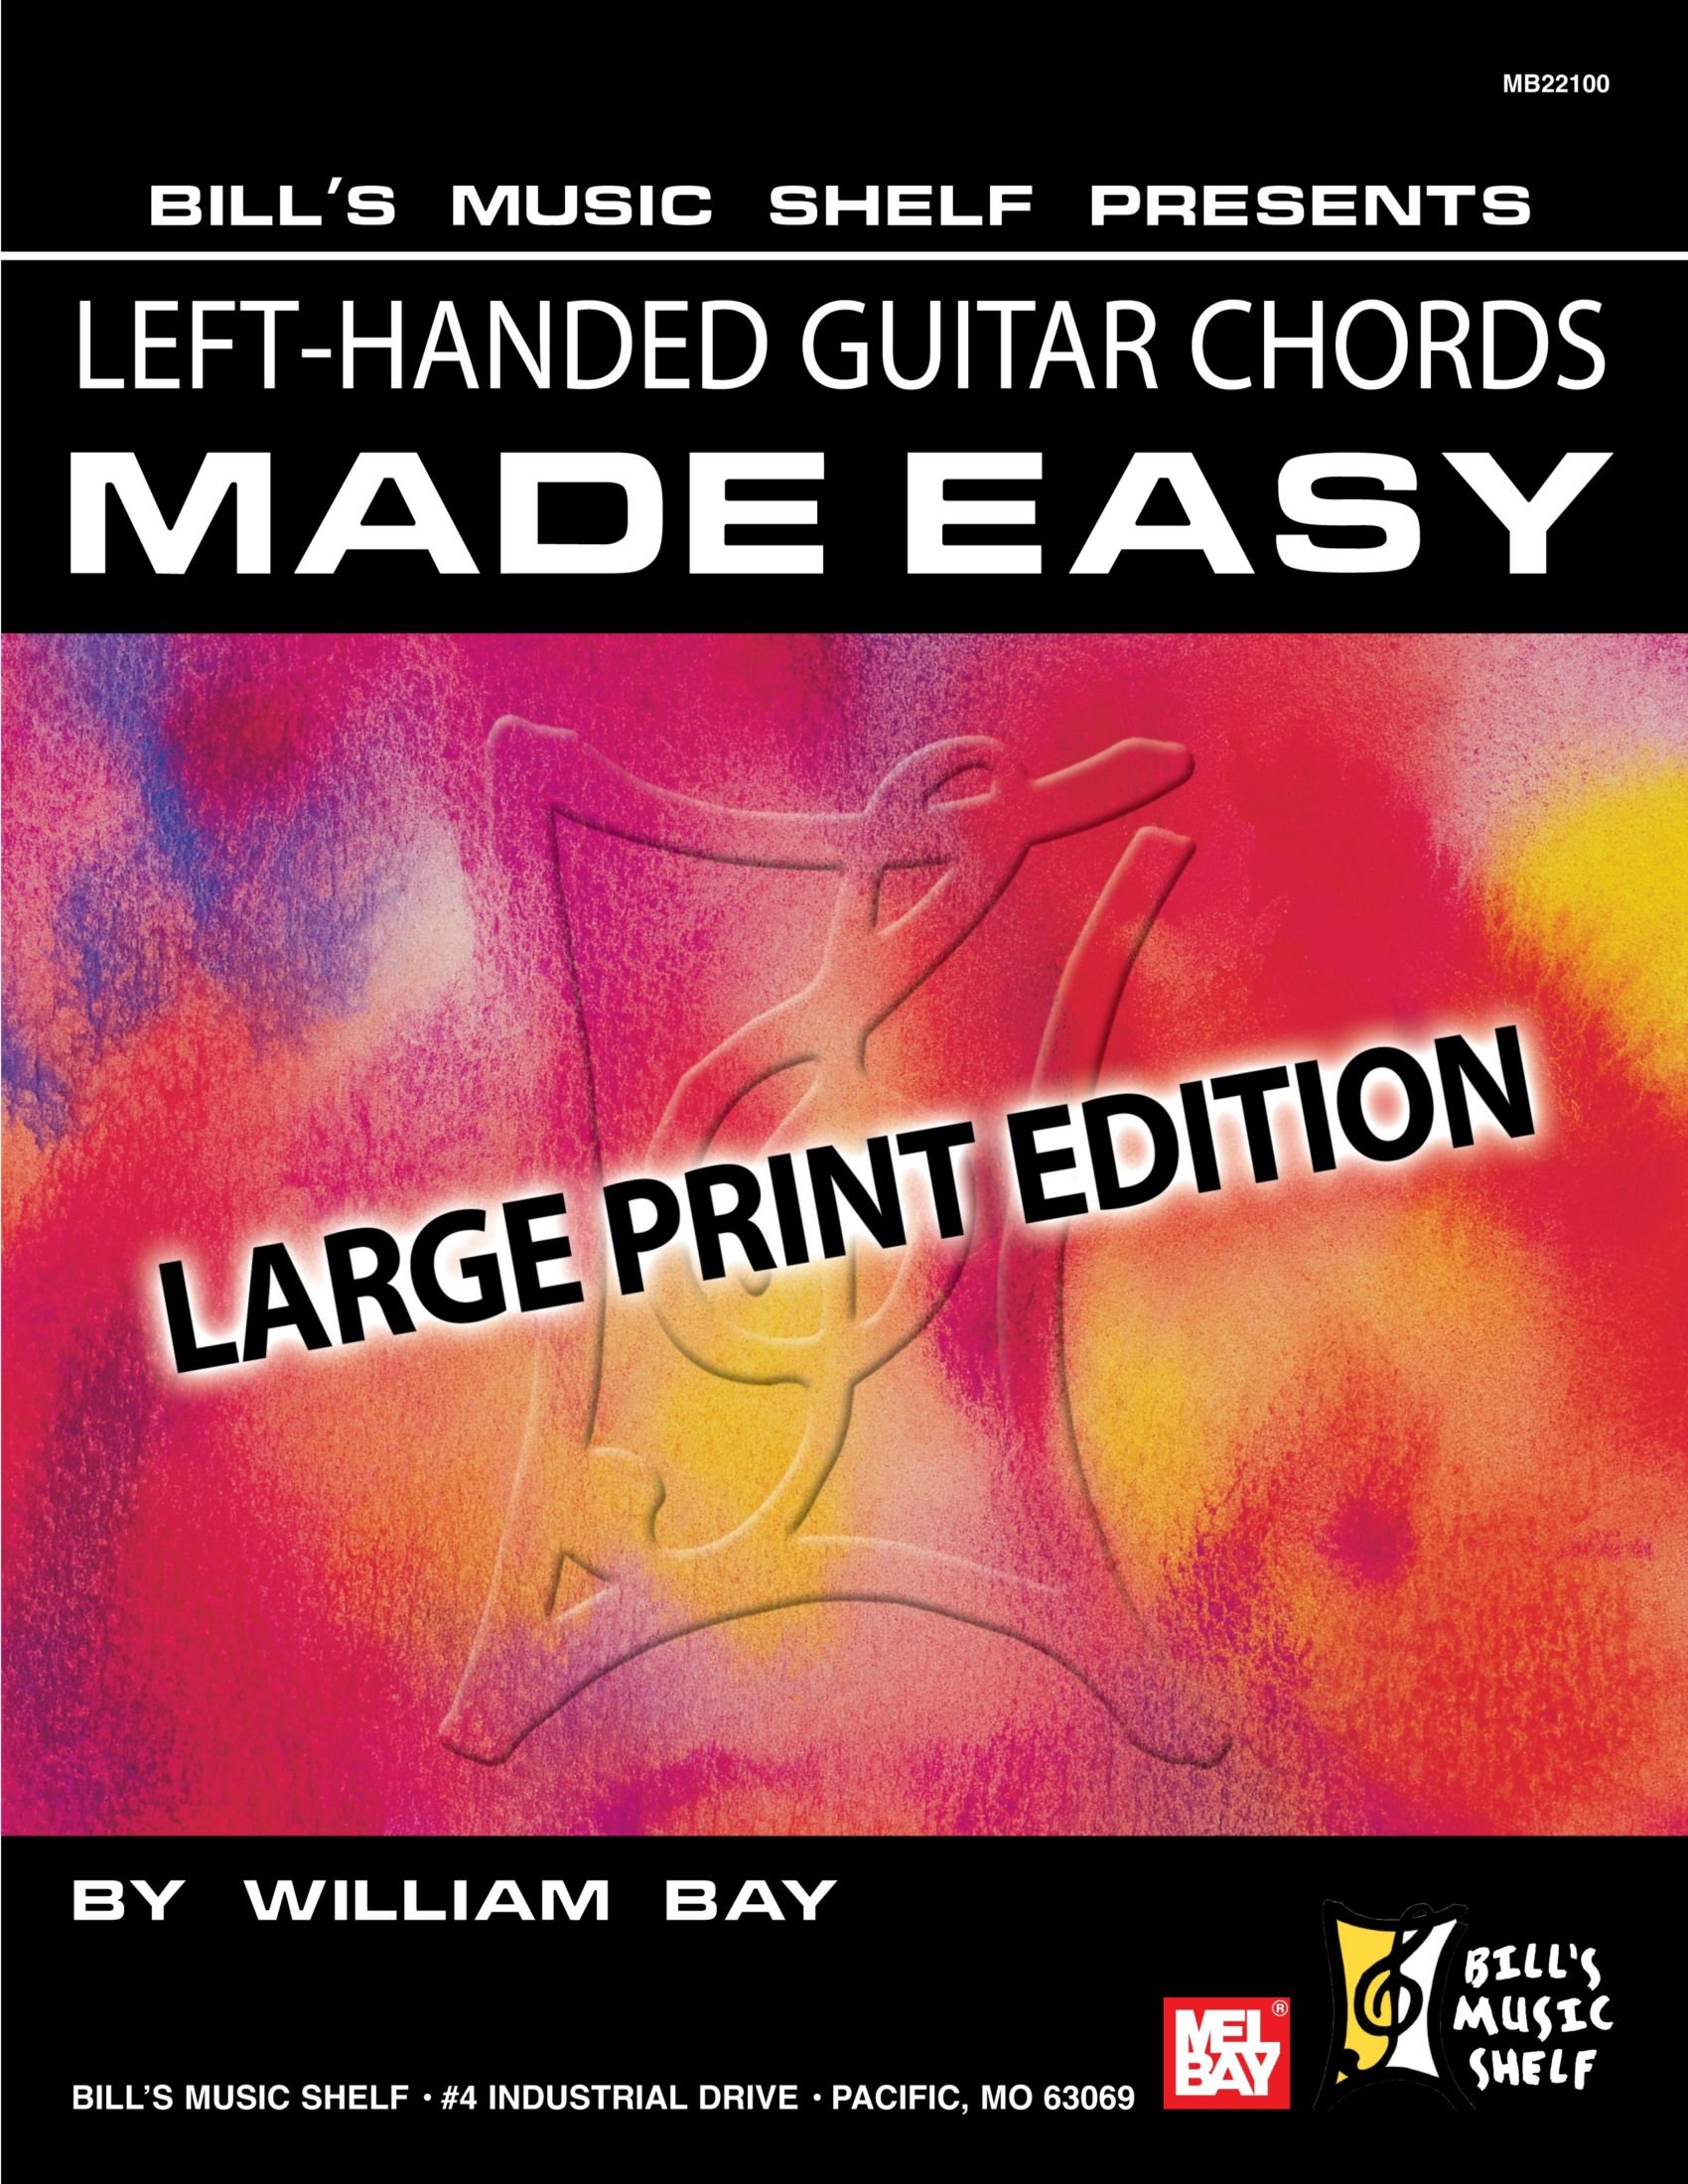 Download Left-Handed Guitar Chords Made Easy: Large Print Edition Text fb2 book